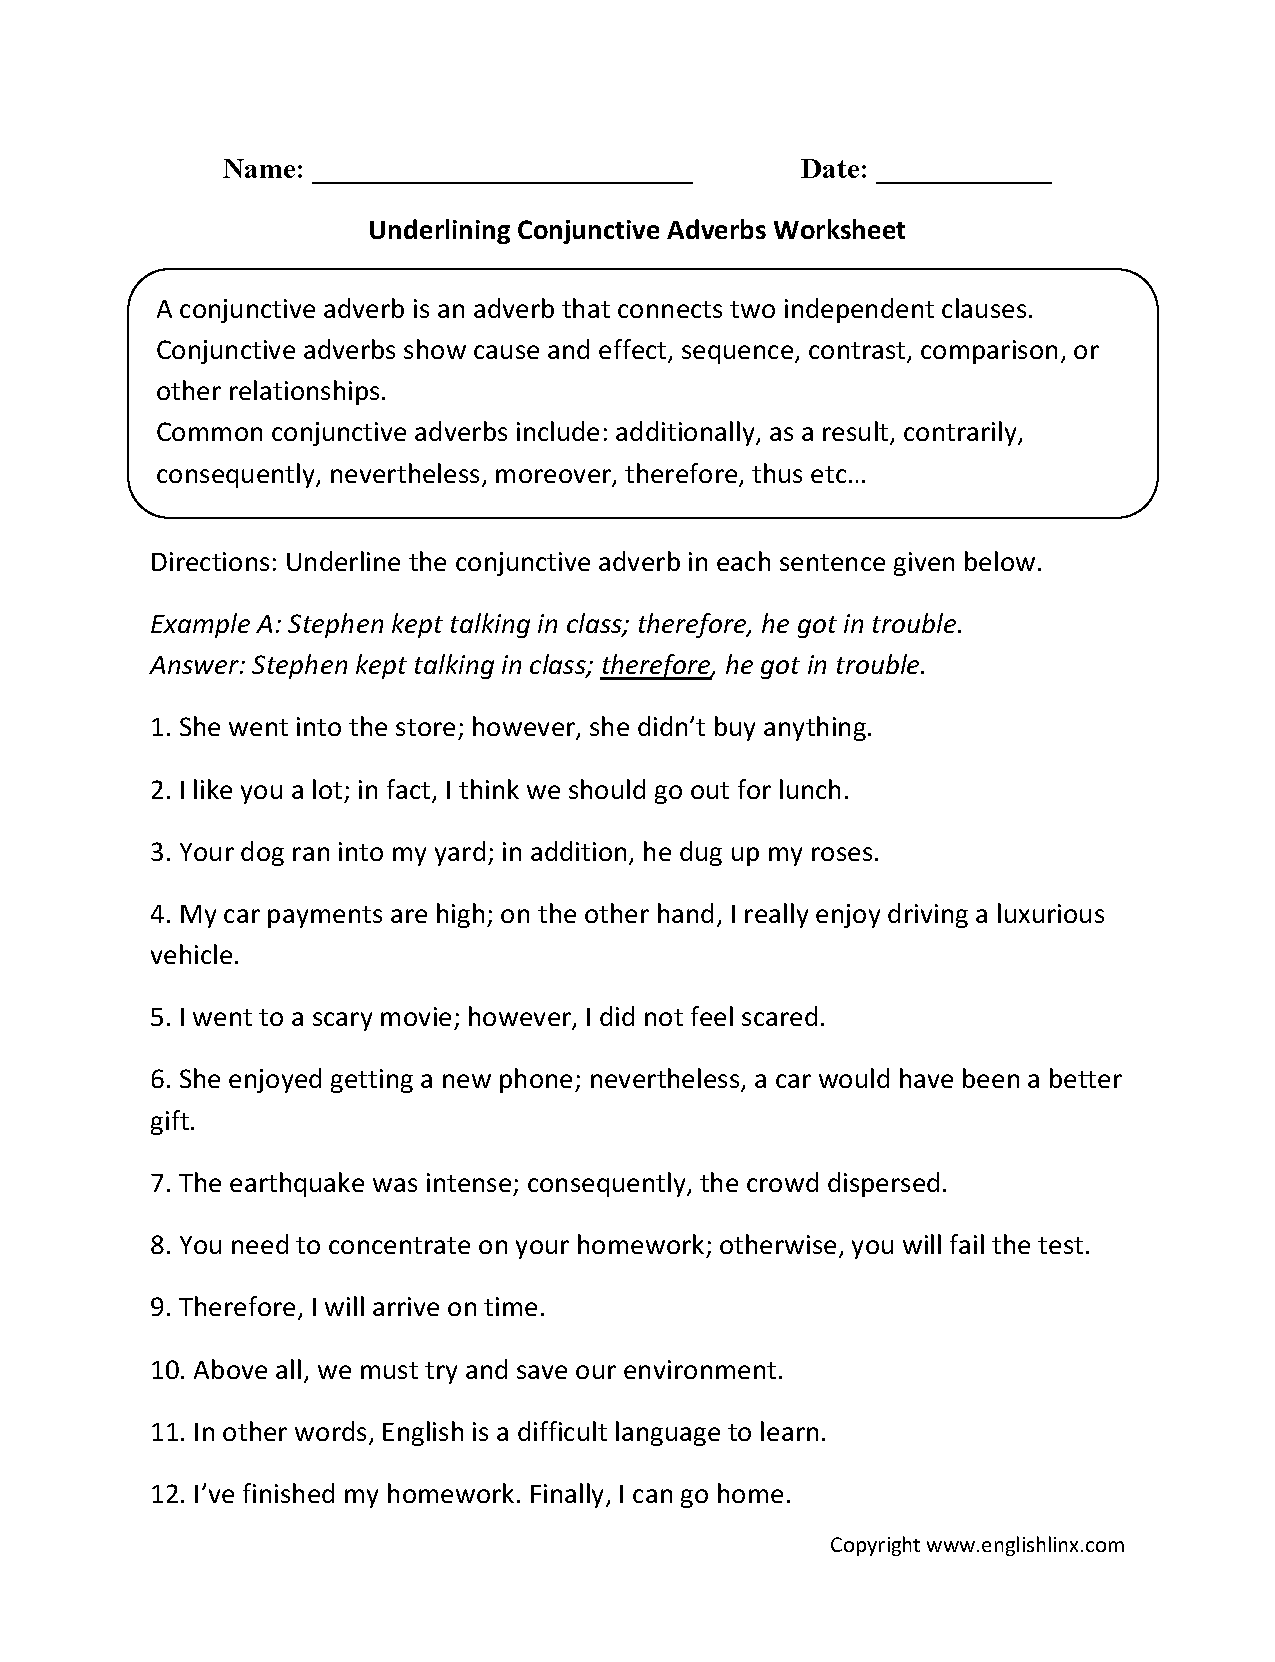 Proatmealus  Splendid Englishlinxcom  Conjunctions Worksheets With Foxy Worksheet With Enchanting Reading Comprehension Inference Worksheets Also Reading Comprehension Cause And Effect Worksheets In Addition Worksheet On Fractions For Grade  And Growing And Shrinking Patterns Worksheets As Well As Writing Good Paragraphs Worksheets Additionally Multiplication Table Worksheets Printable From Englishlinxcom With Proatmealus  Foxy Englishlinxcom  Conjunctions Worksheets With Enchanting Worksheet And Splendid Reading Comprehension Inference Worksheets Also Reading Comprehension Cause And Effect Worksheets In Addition Worksheet On Fractions For Grade  From Englishlinxcom